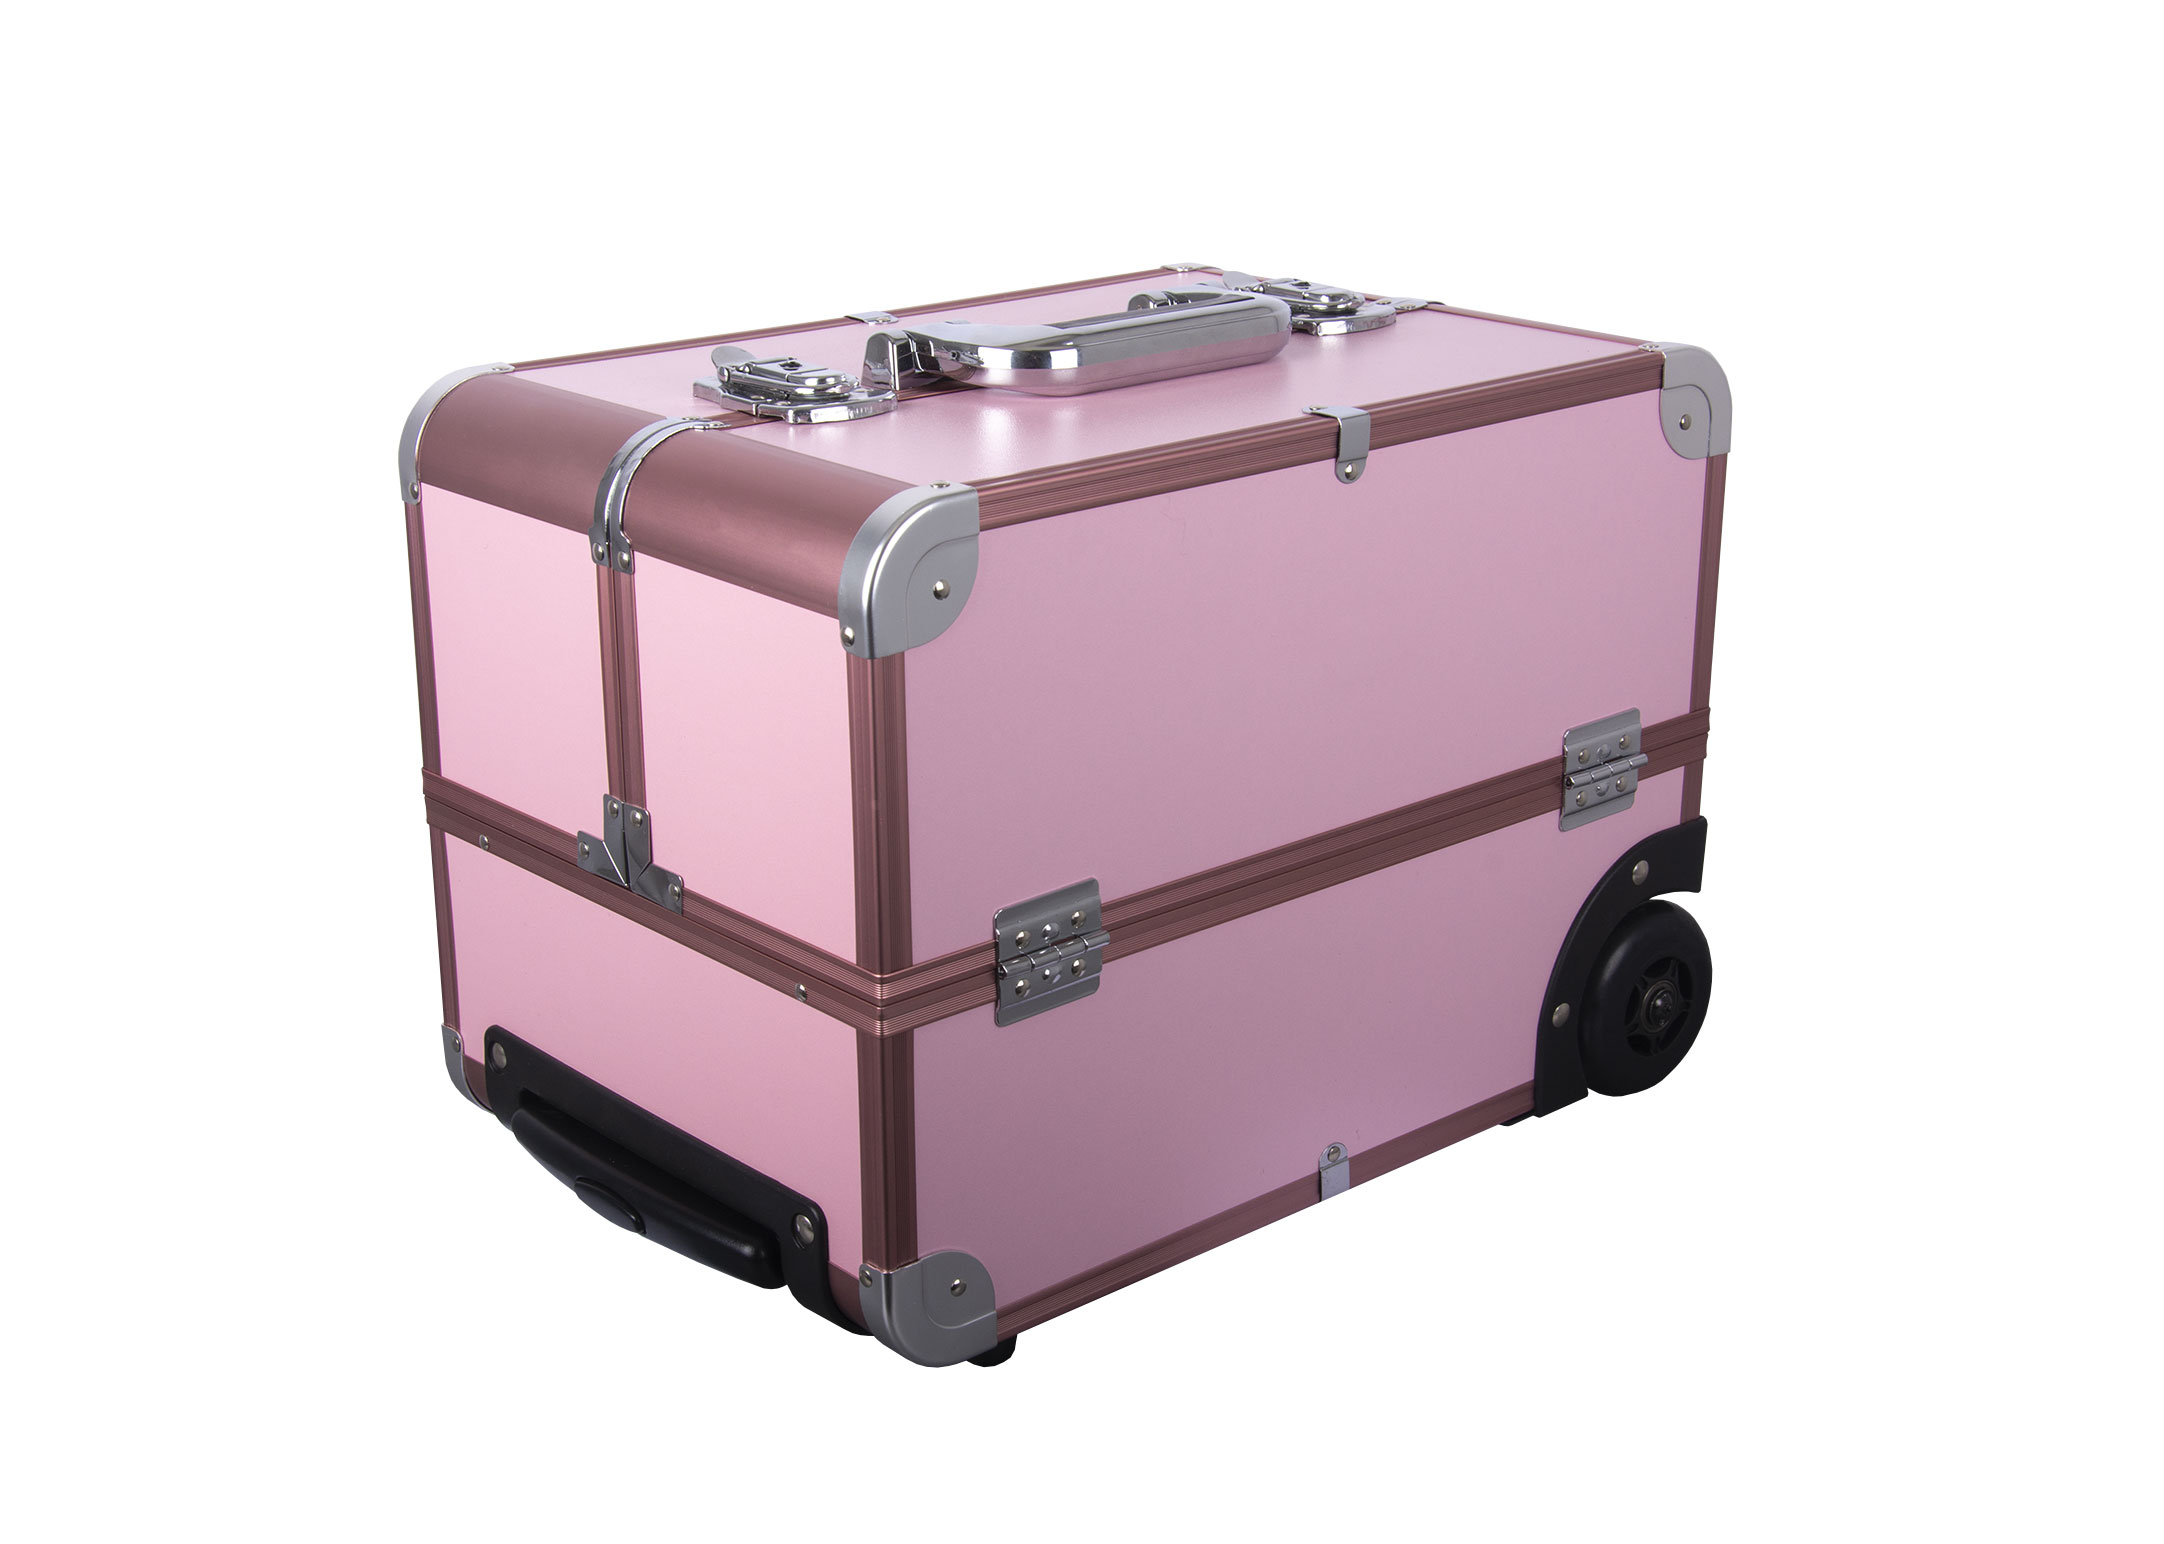 Groom-X Grooming Case Pink Deluxe Portable with wheels - Pink